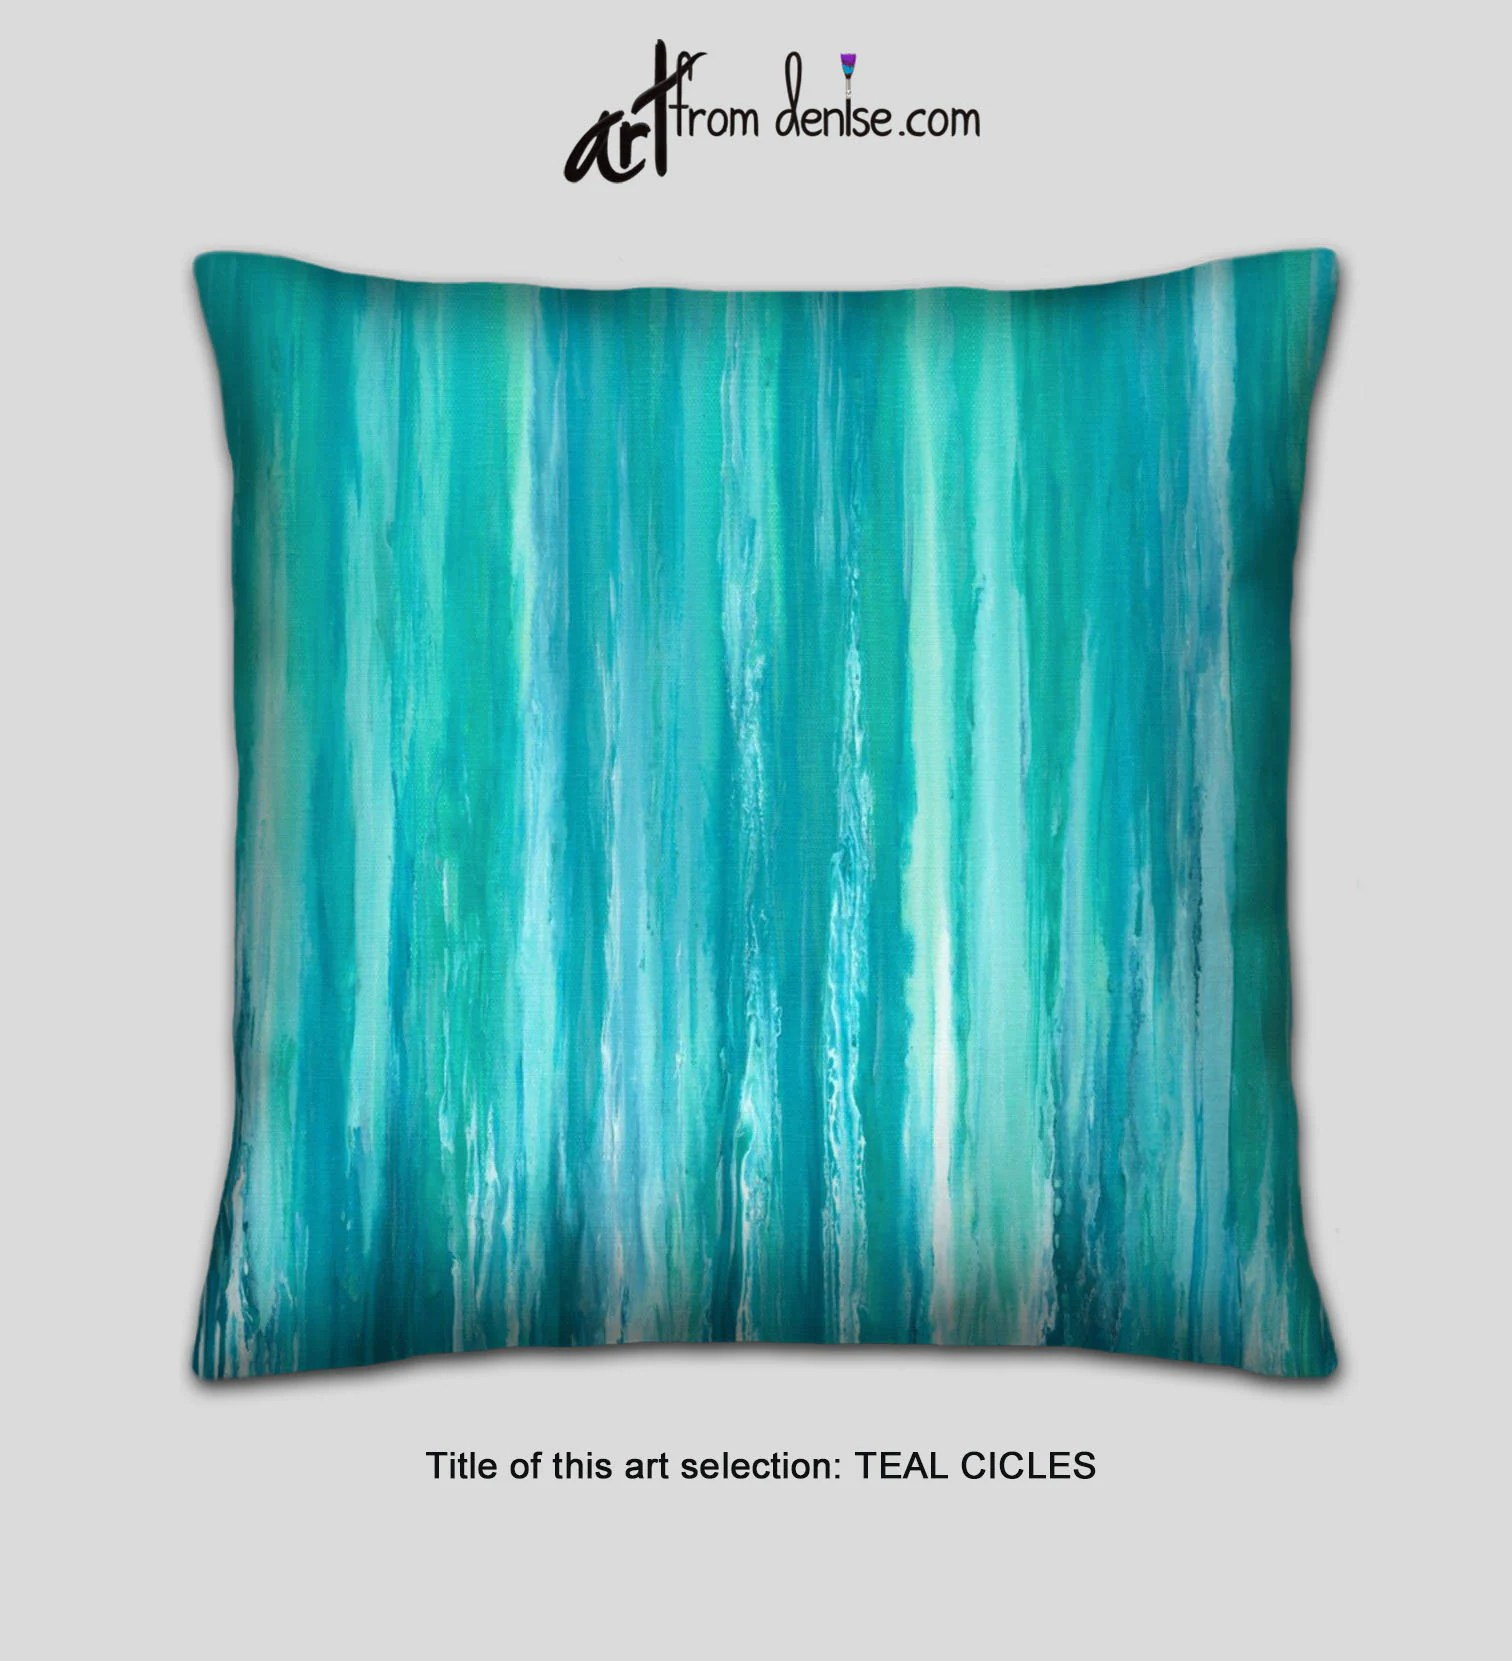 Big Couch Throw Small Or Large Teal Throw Pillow For Bed Decor Big Couch Pillows Set Or Teal Outdoor Sofa Cushions